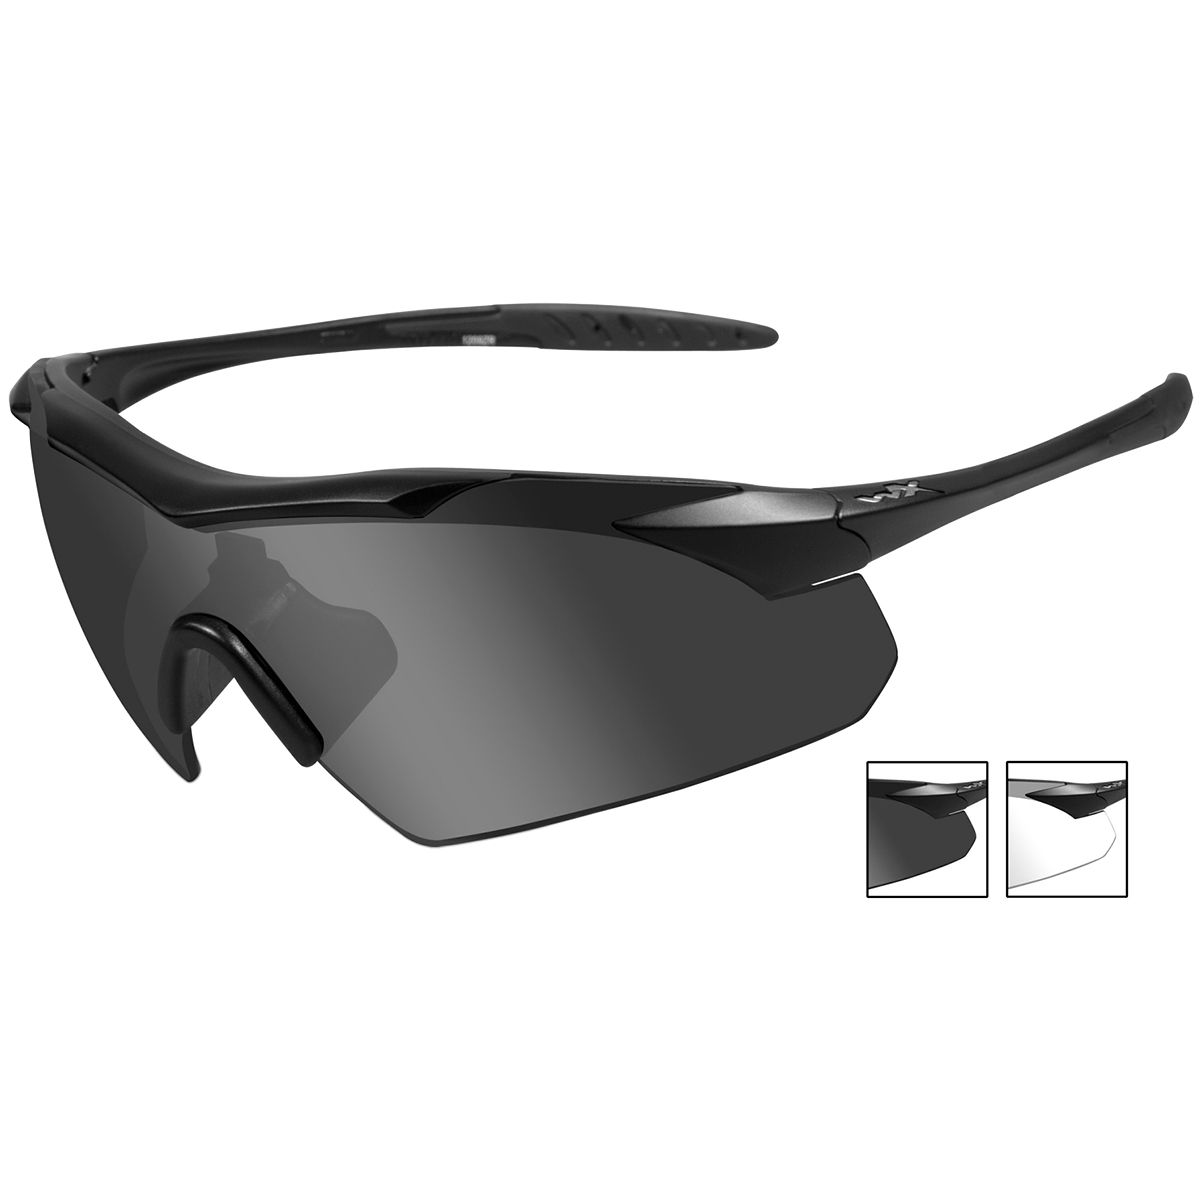 587eee8448 Details about Wiley X Wx Vapor Glasses 2 Spare Anti Fog Lenses Low Profile  Matte Black Frame